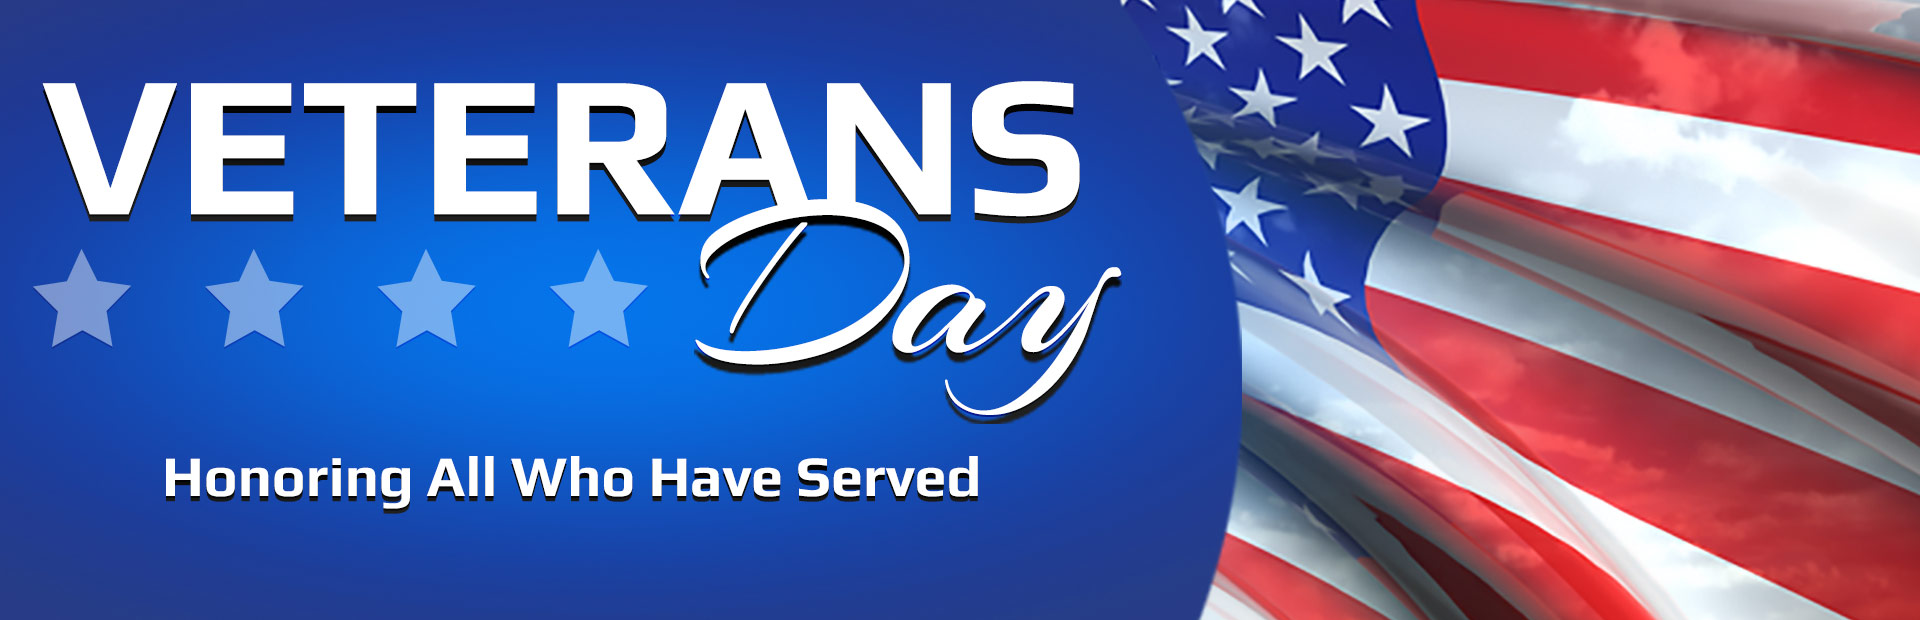 Veterans Day: Honoring all who have served.